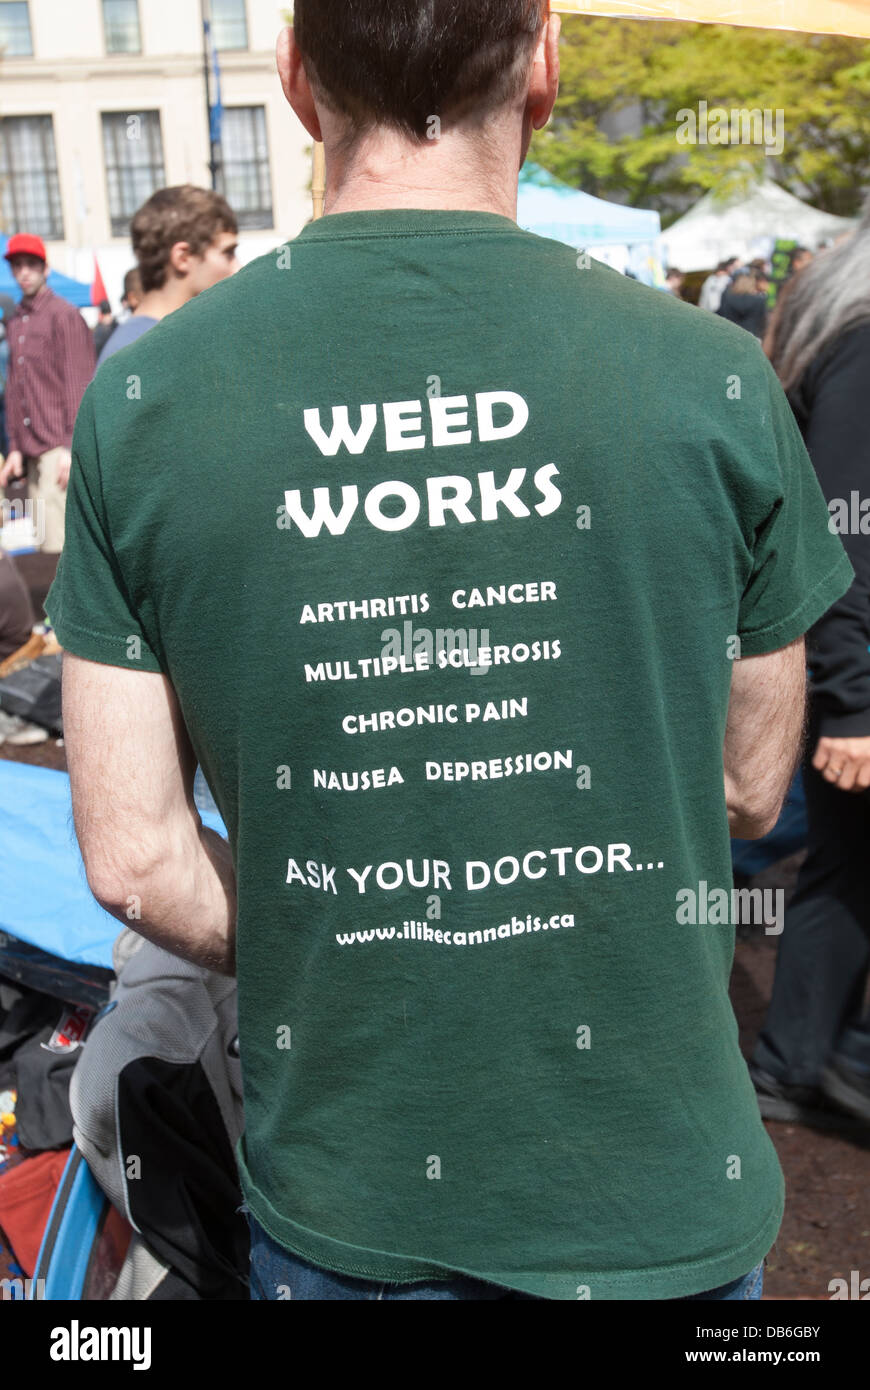 Man wearing t-shirt advertising that marijuana is an aid in certain illnesses. - Stock Image